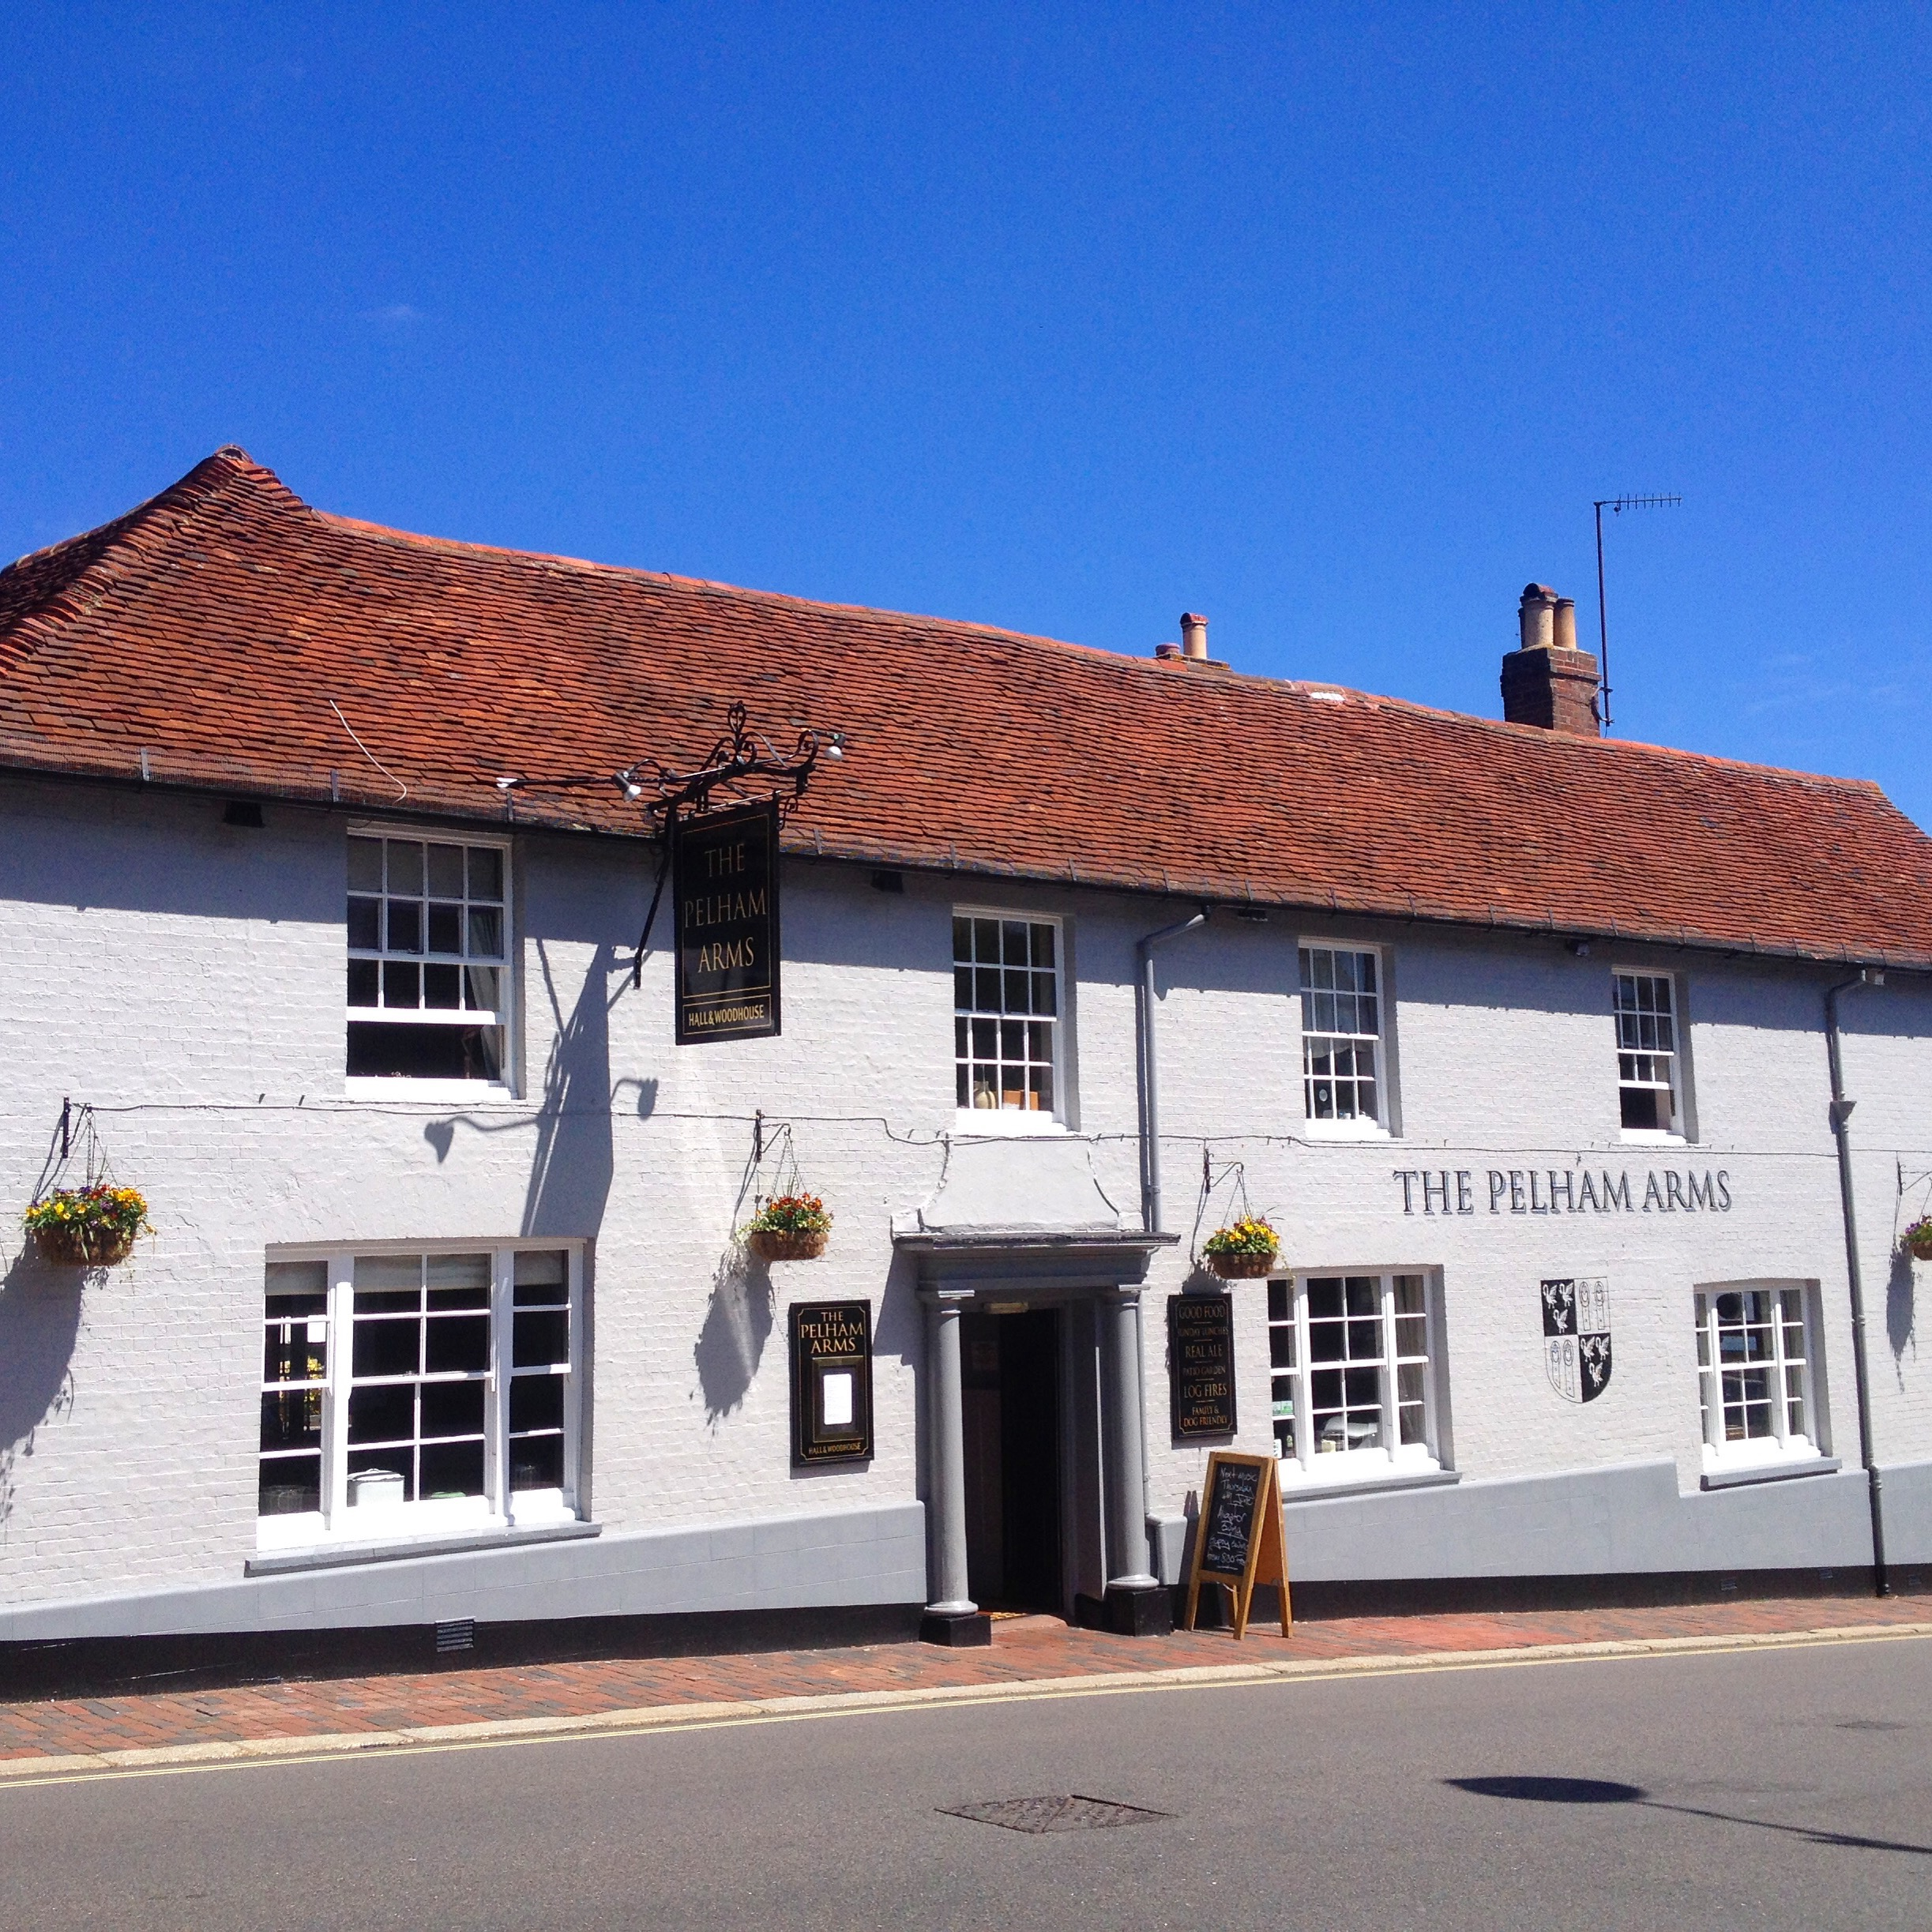 The Pelham Arms